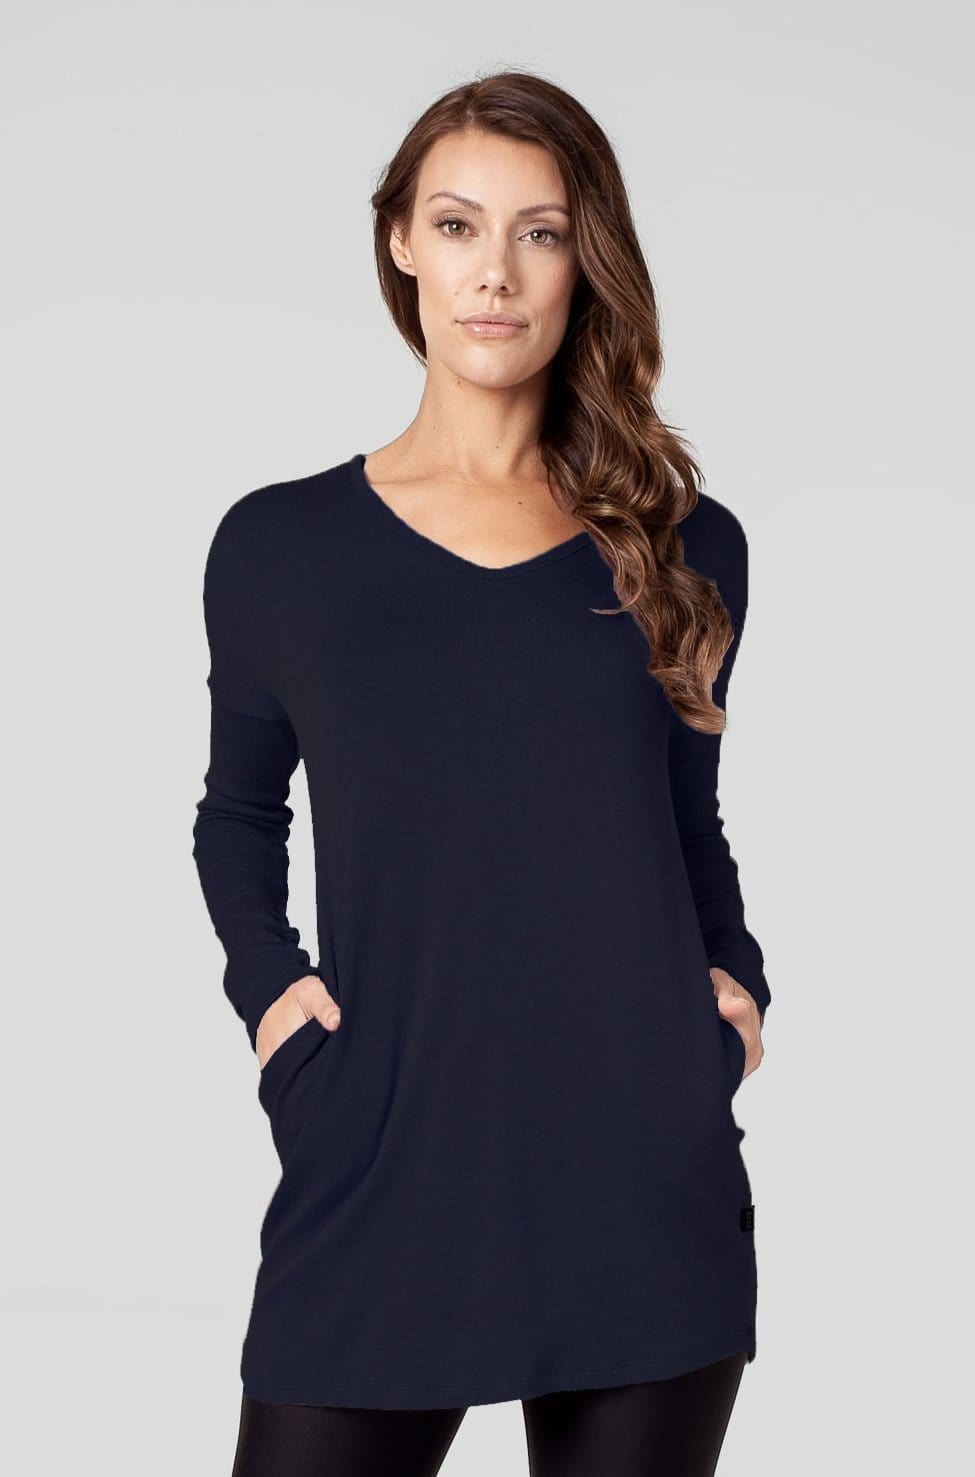 A woman wears a long sleeves navy tunic with her hands in the pockets.